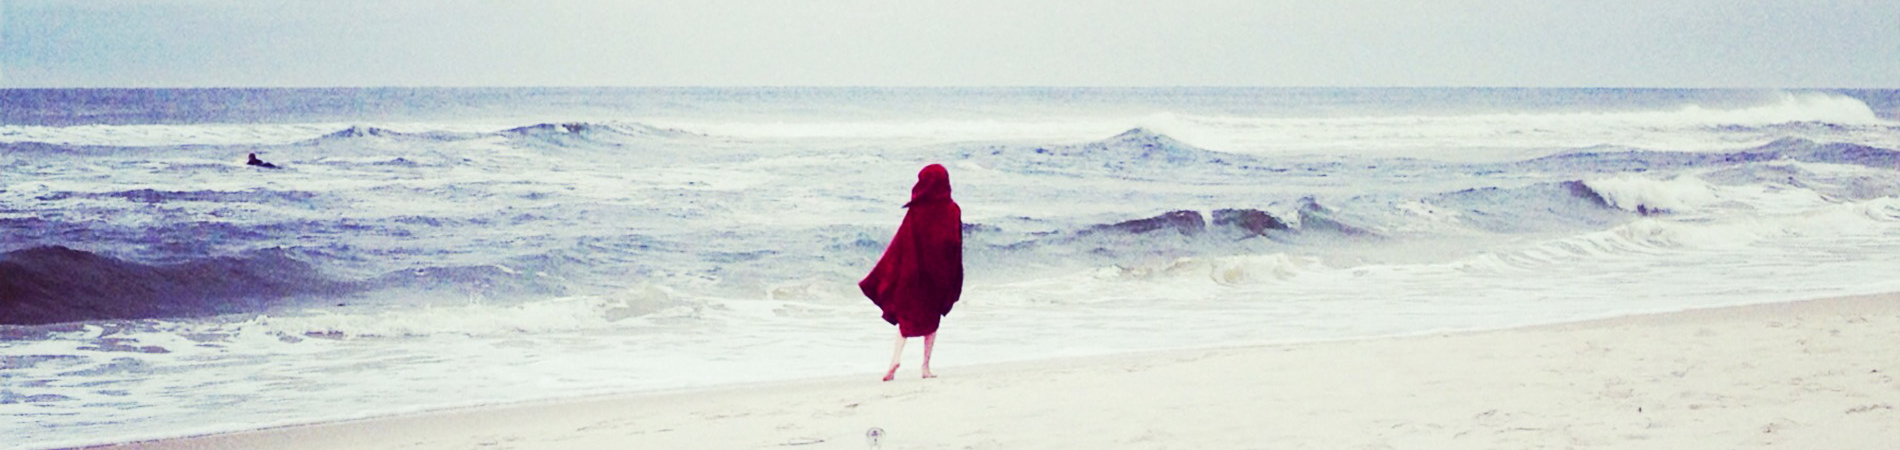 2015 July Red Riding Hood at the Beach